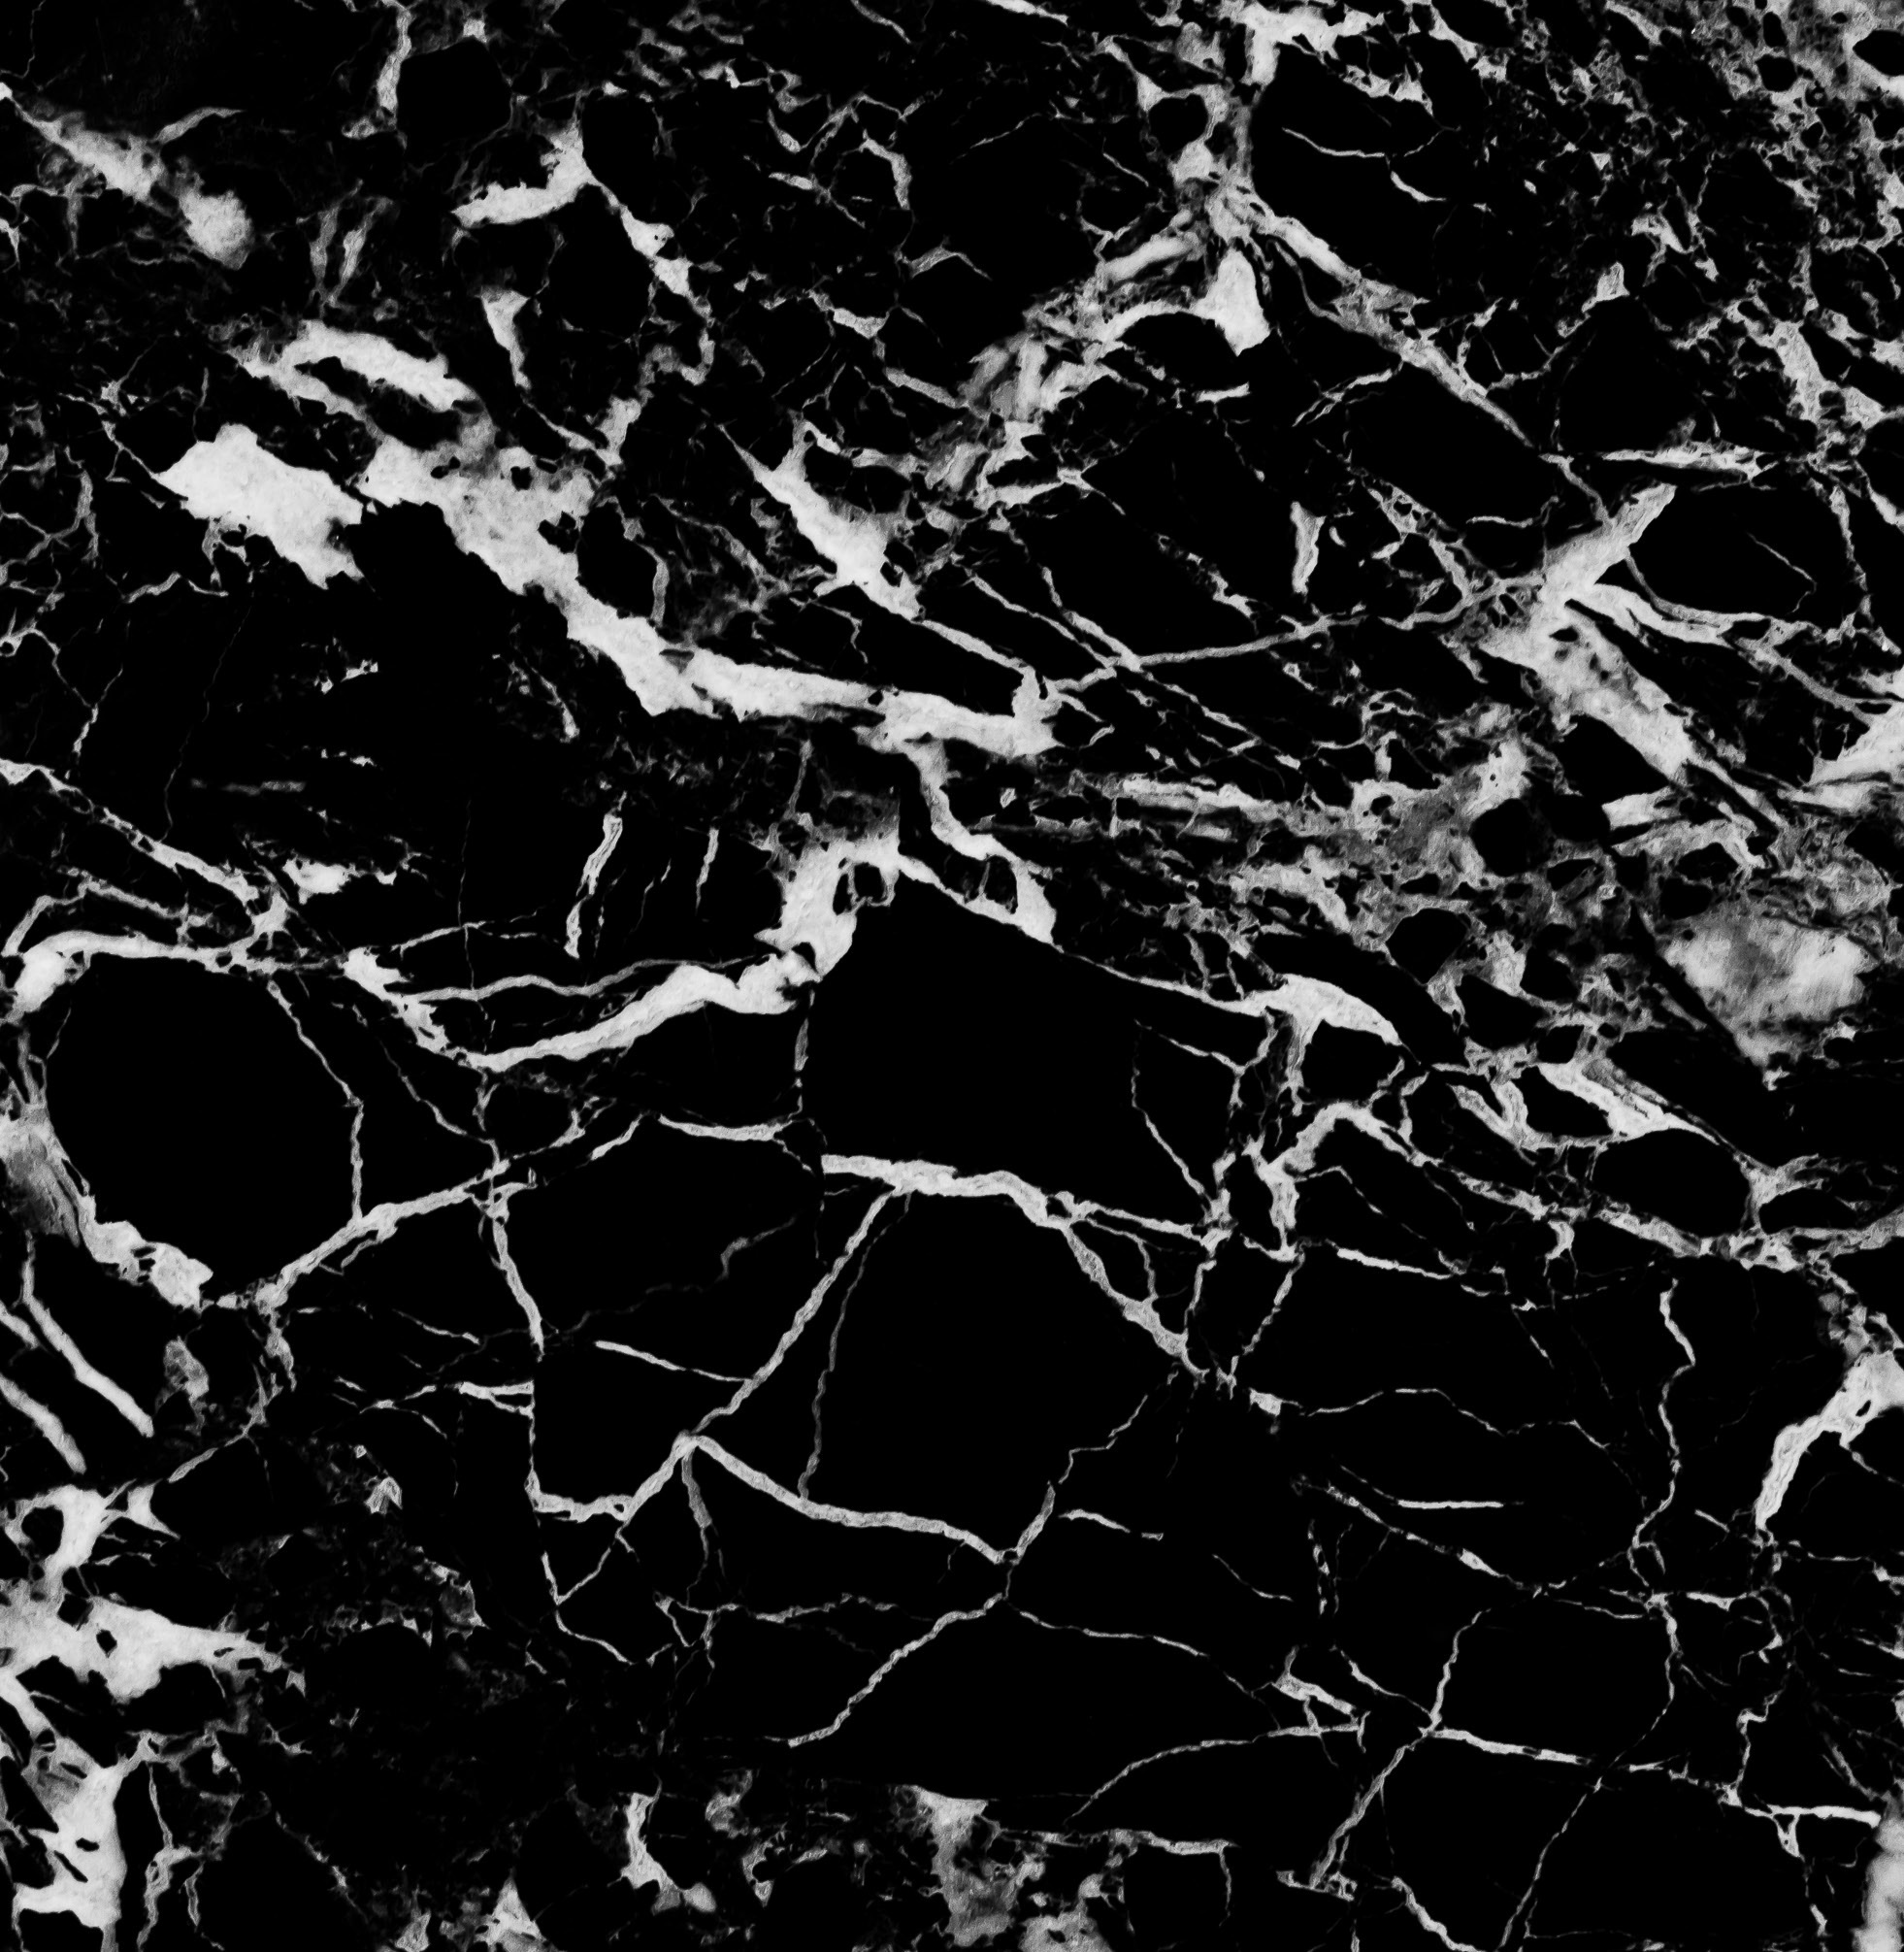 Problematic End for 2014 in Marble Industry